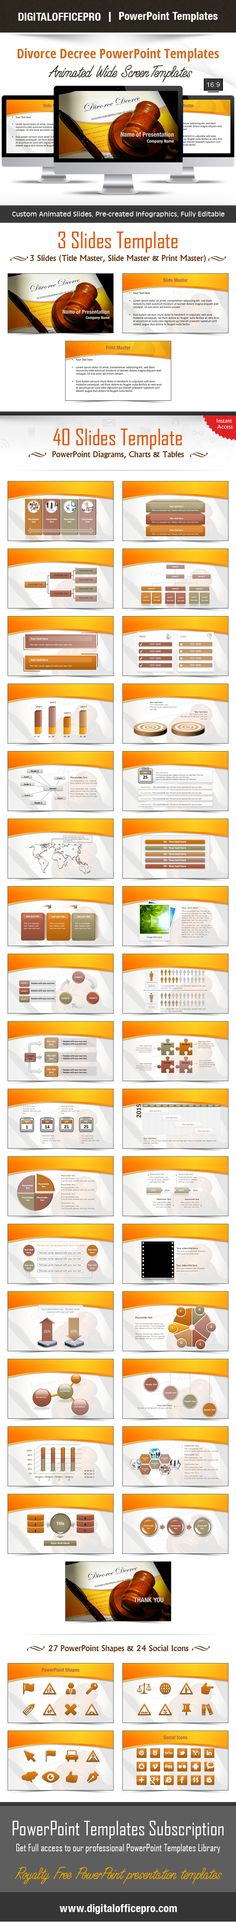 Eye PowerPoint Template Backgrounds Shape, Set of and Backgrounds - divorce templates